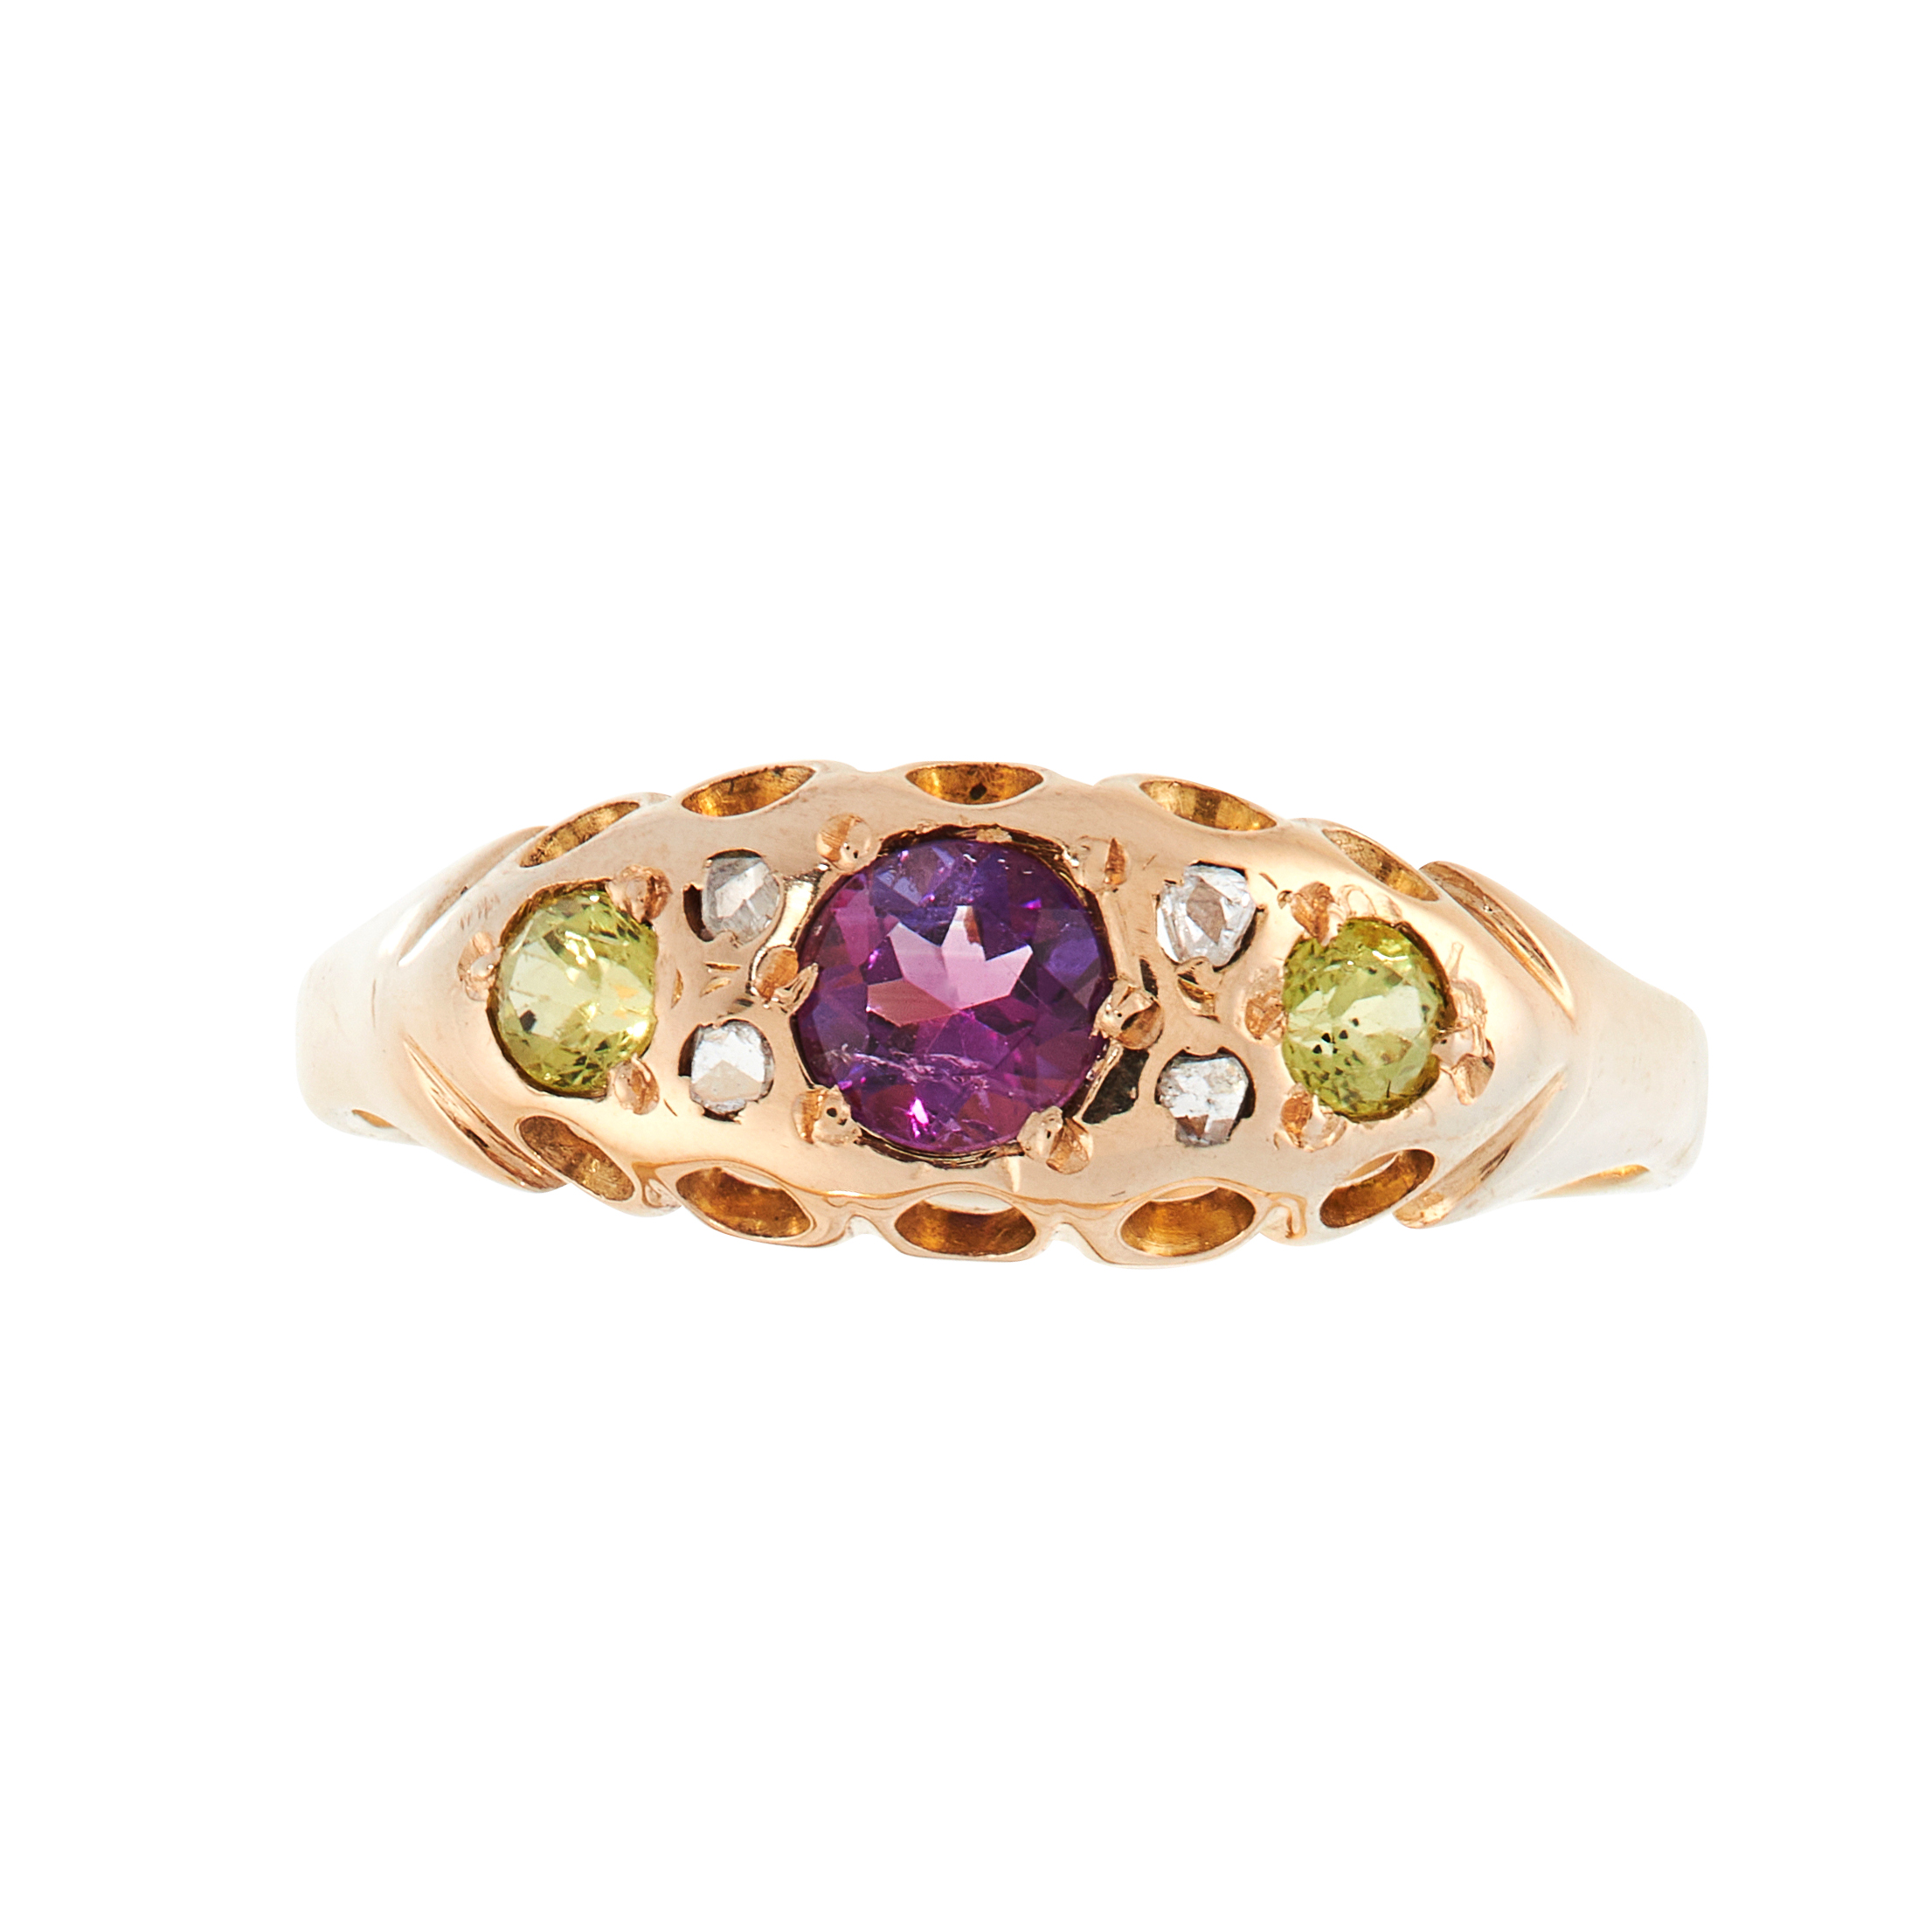 AN ANTIQUE AMETHYST, PERIDOT AND DIAMOND SUFFRAGETTE DRESS RING, EARLY 20TH CENTURY in 18ct yellow